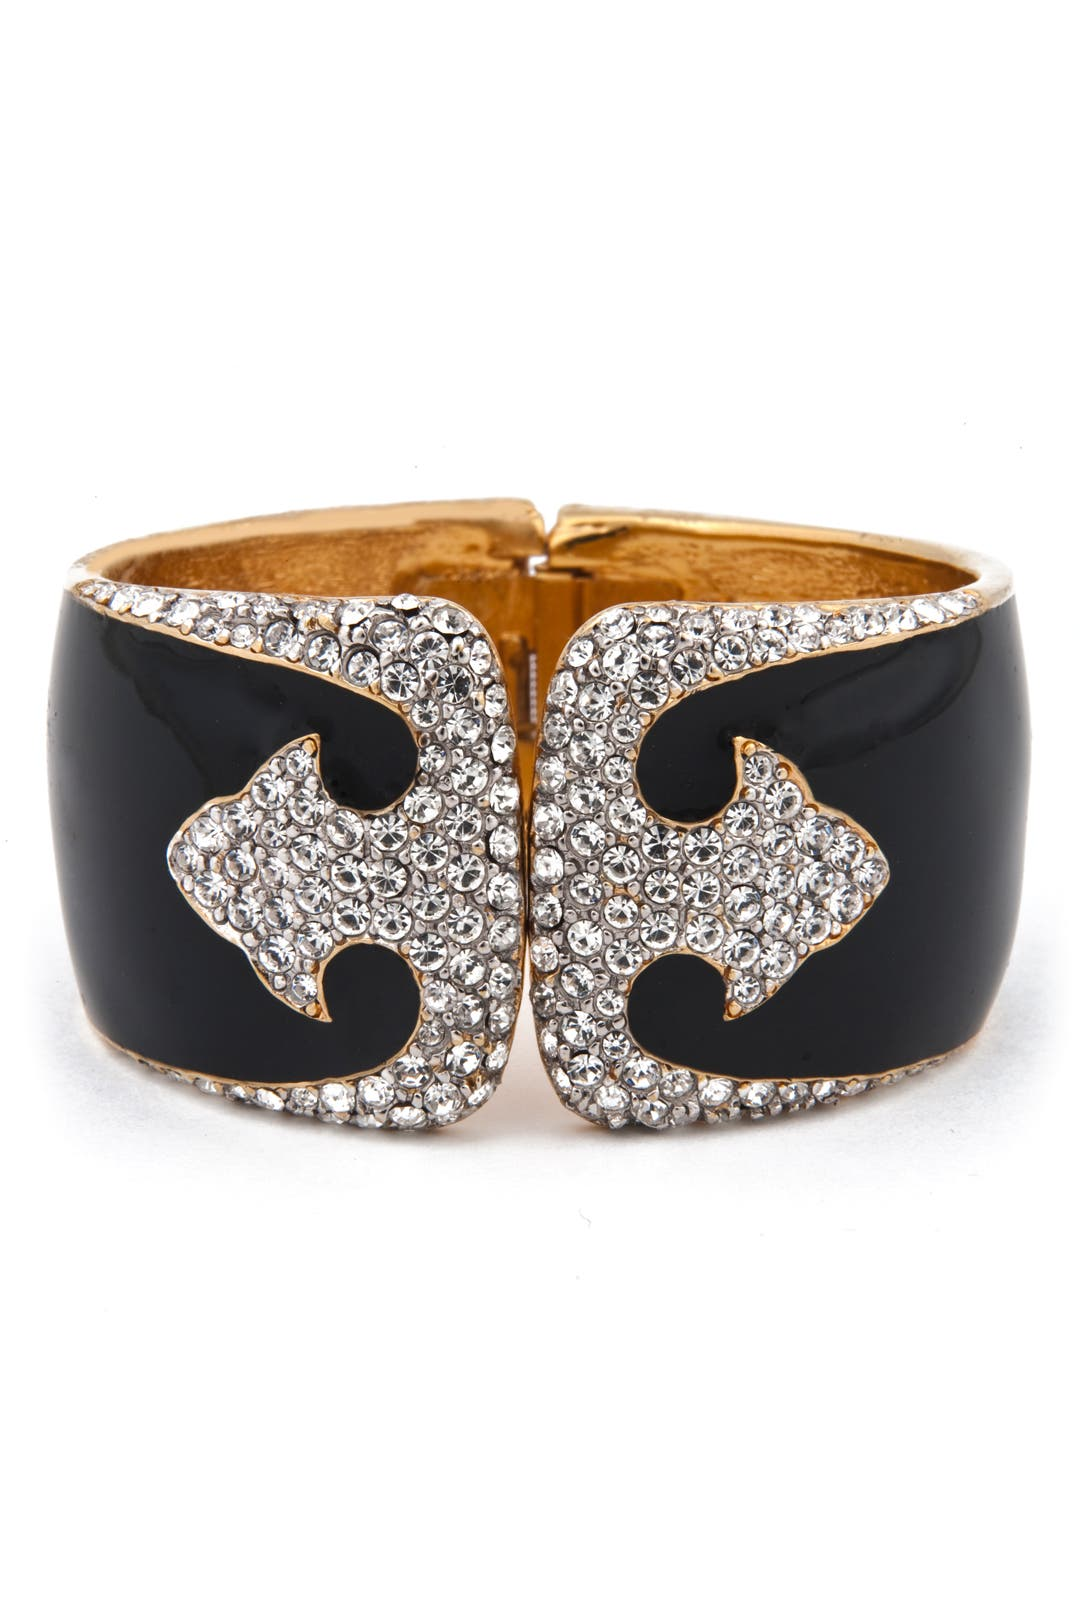 Art Deco Cuff by Ciner